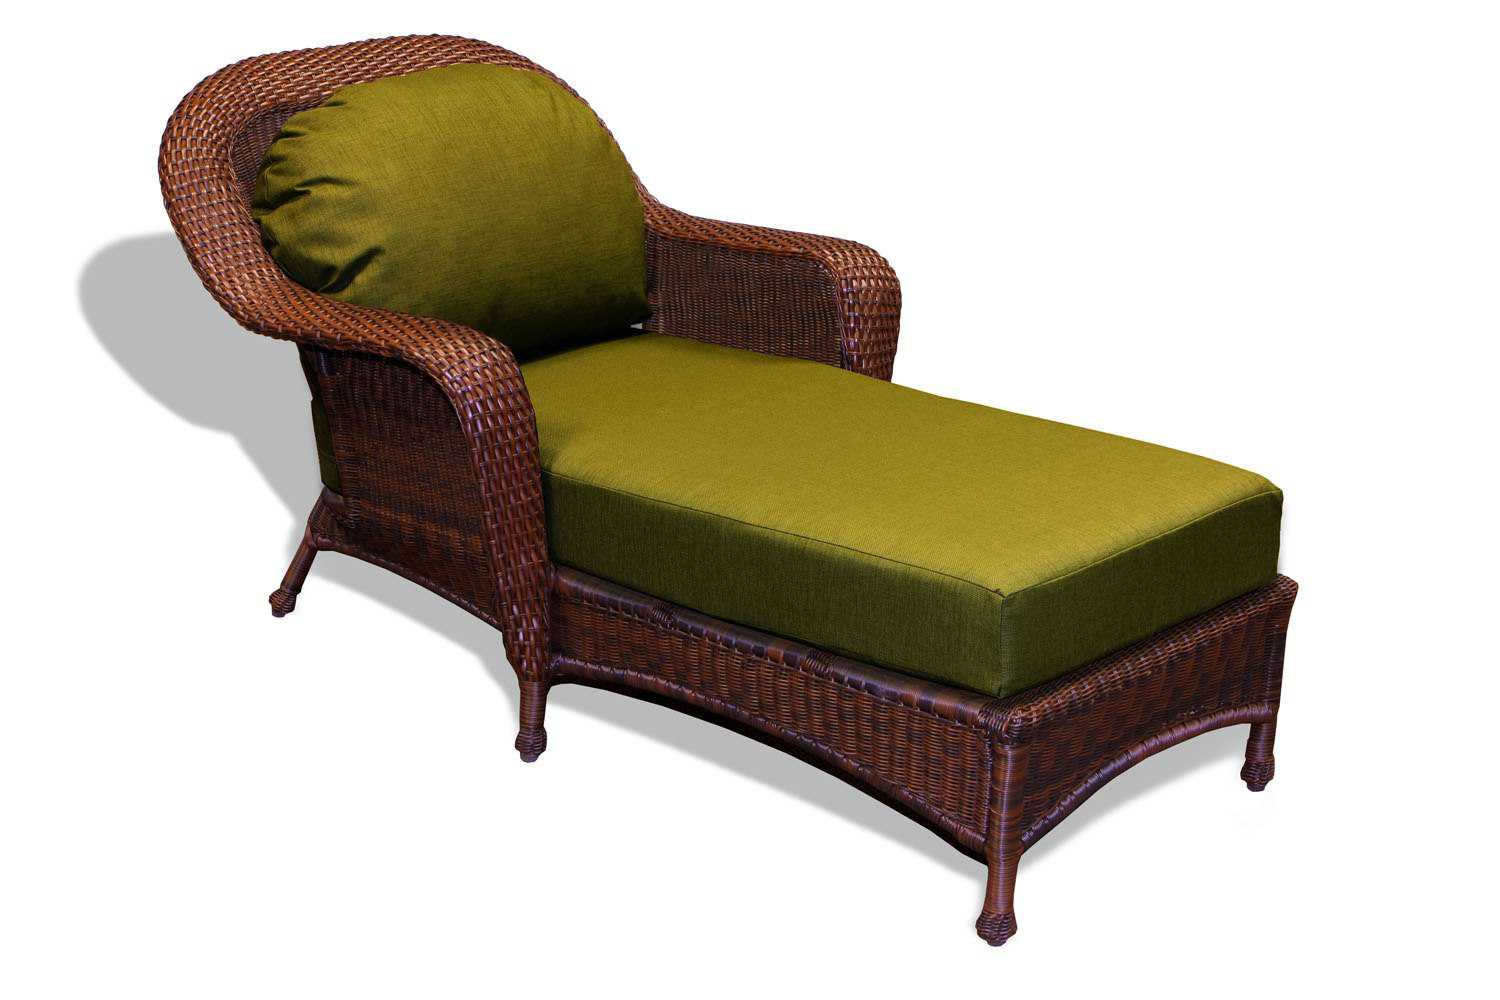 Tortuga outdoor lexington wicker cushion chaise lounge for Chaise lounge accessories